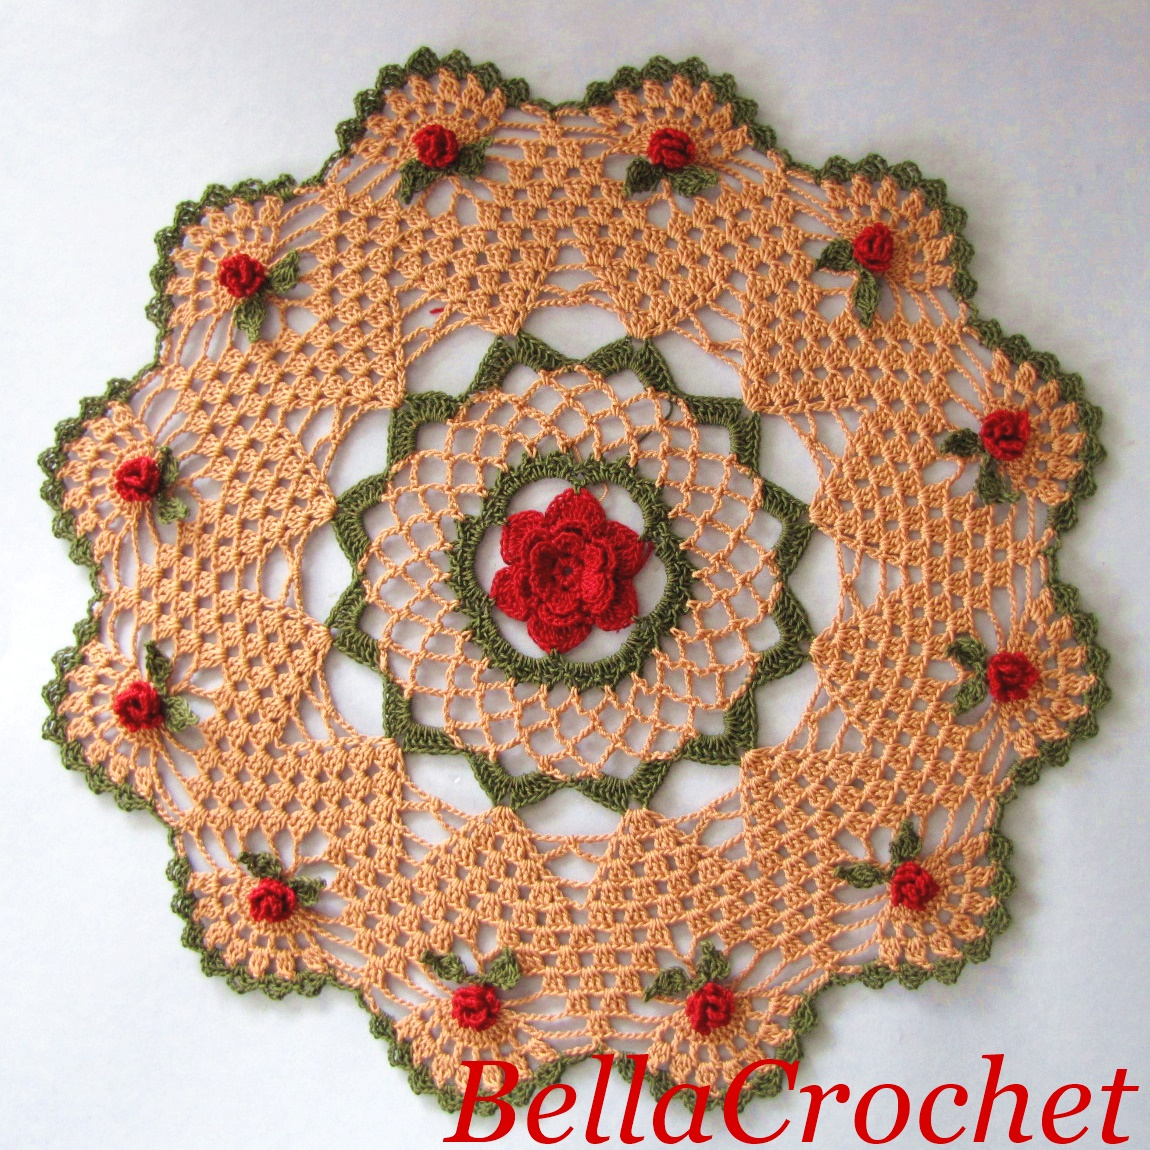 Bellacrochet mavanees roses a free crochet pattern for you i am pleased to share this free pattern with you this doily was named for my mother mavanee joann who loved roses and taught me how to crochet bankloansurffo Images